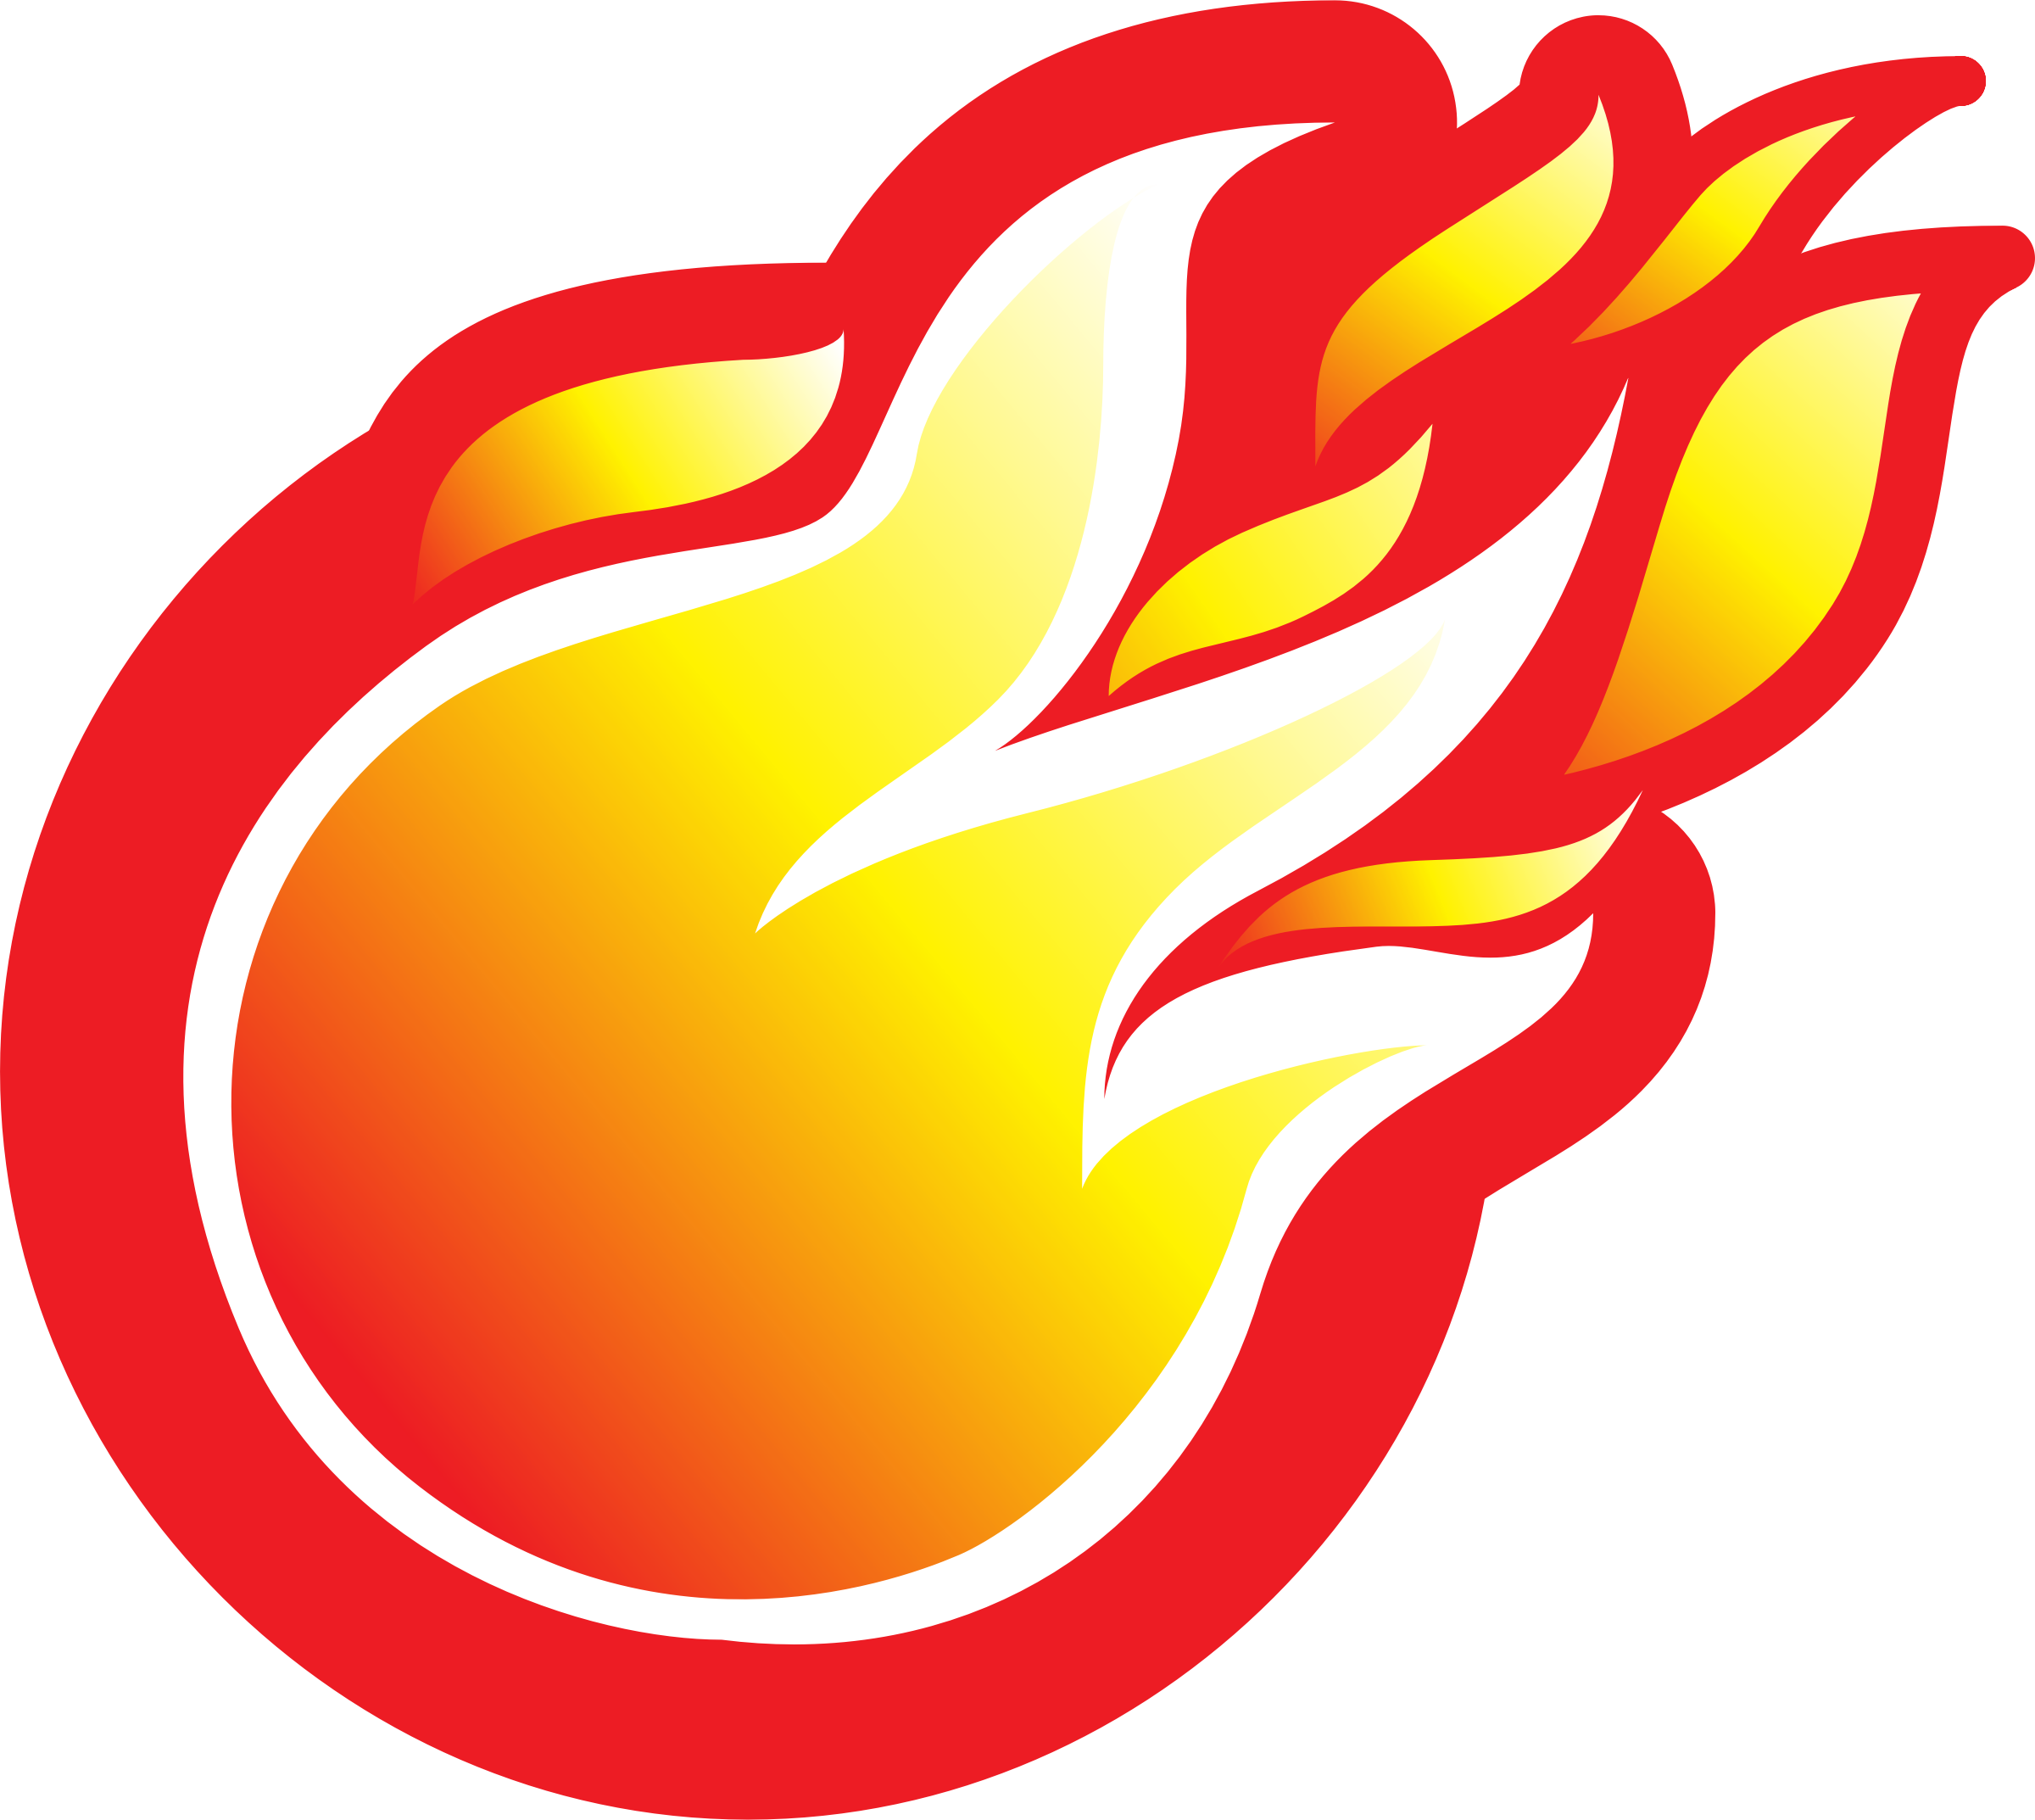 Flame clip art images free clipart